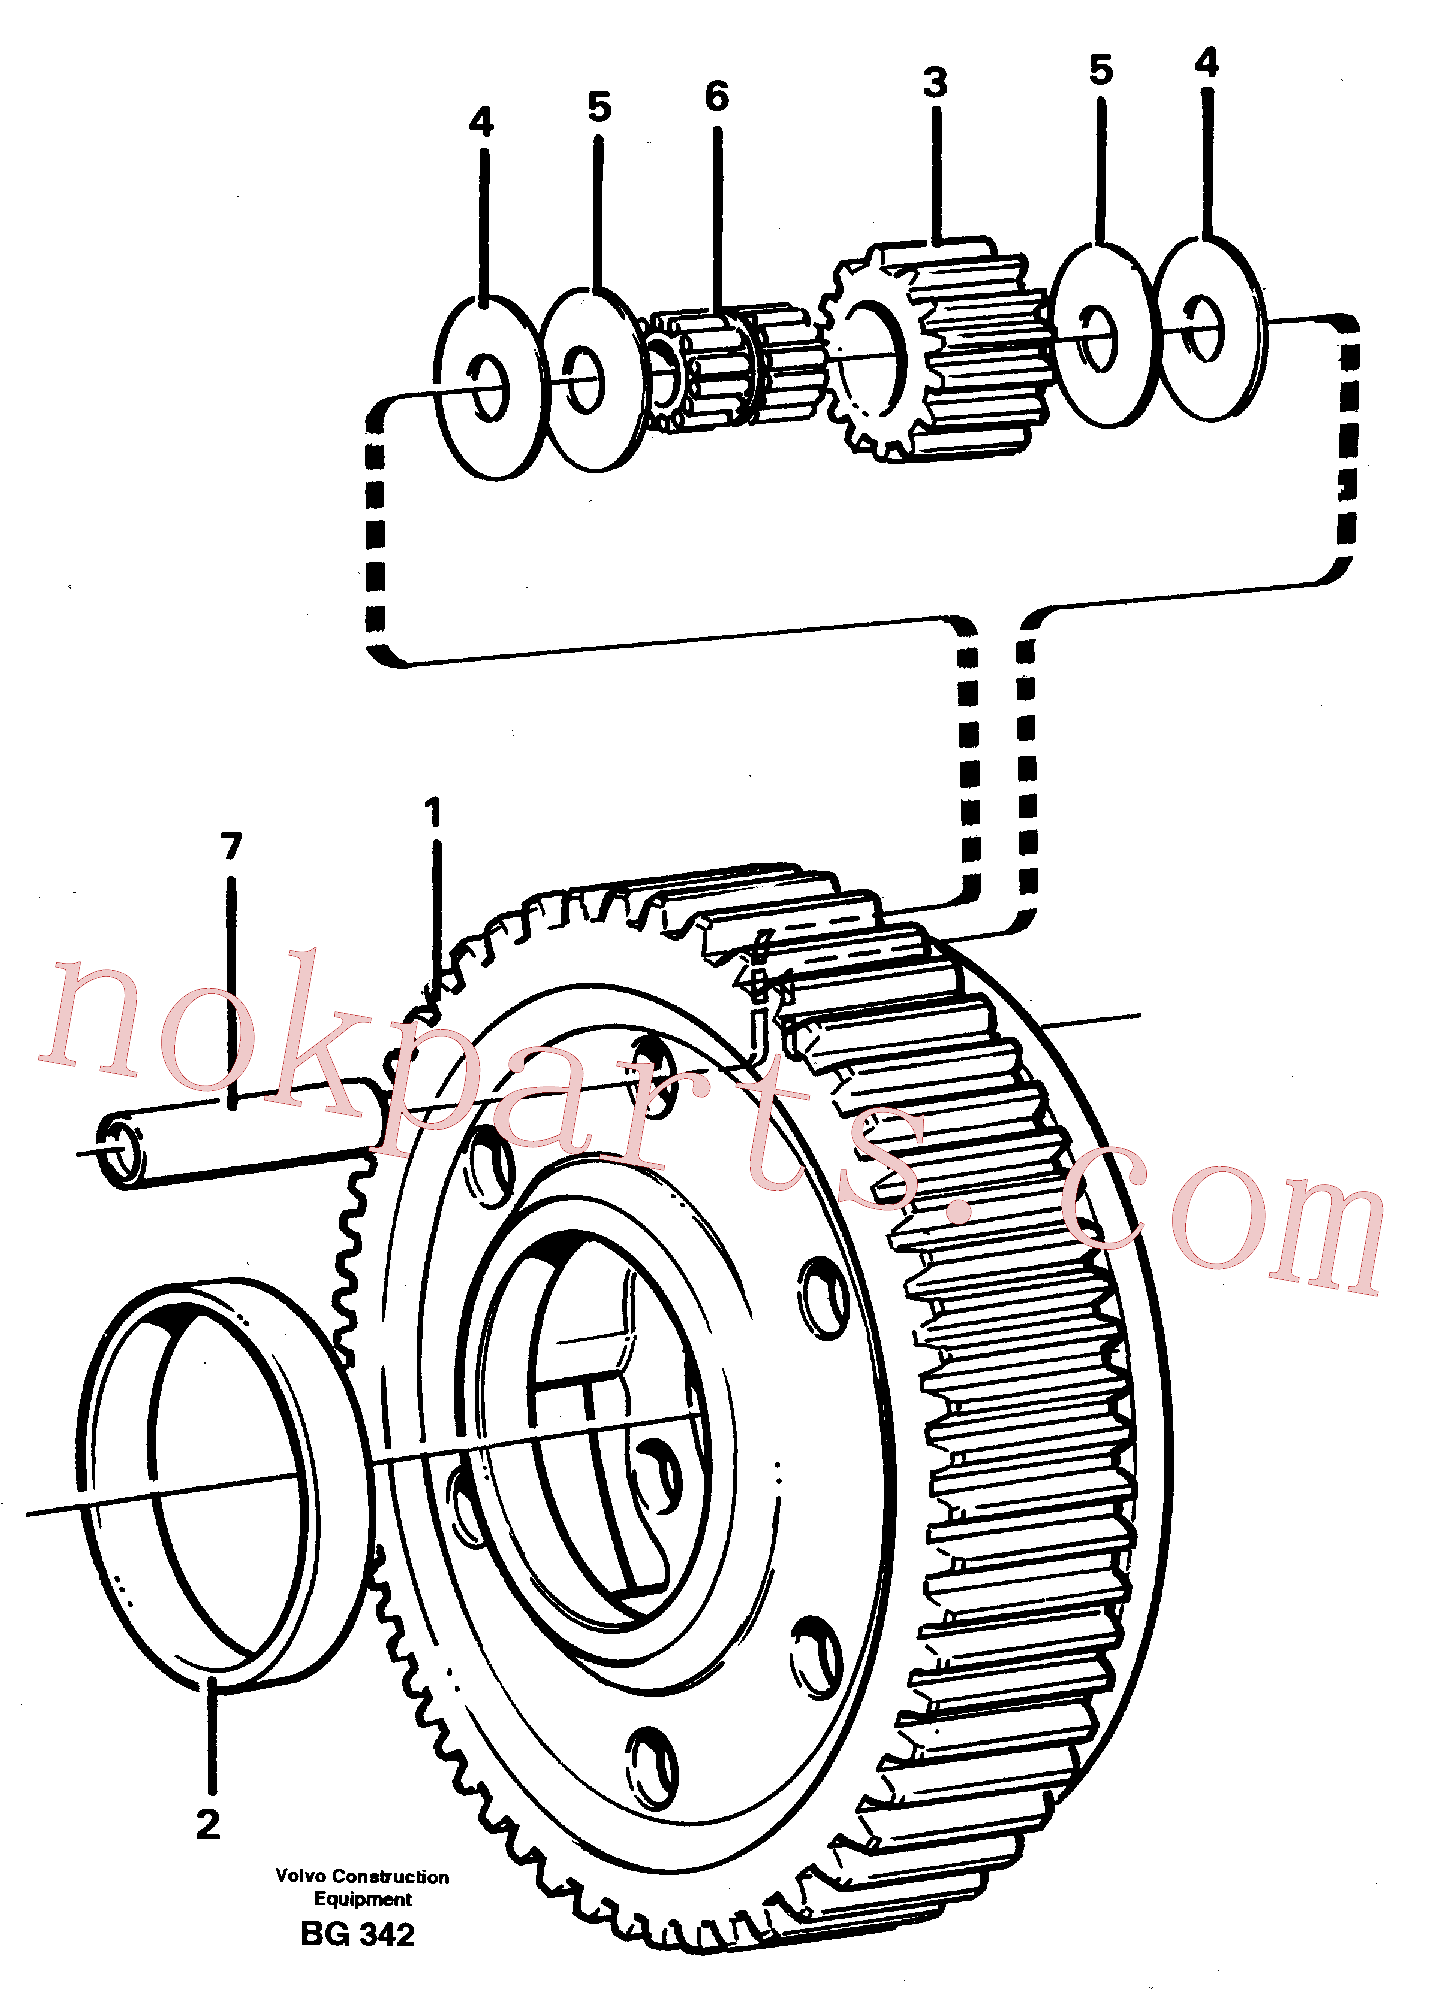 VOE11037424 for Volvo Planet kit, stage 5(BG342 assembly)